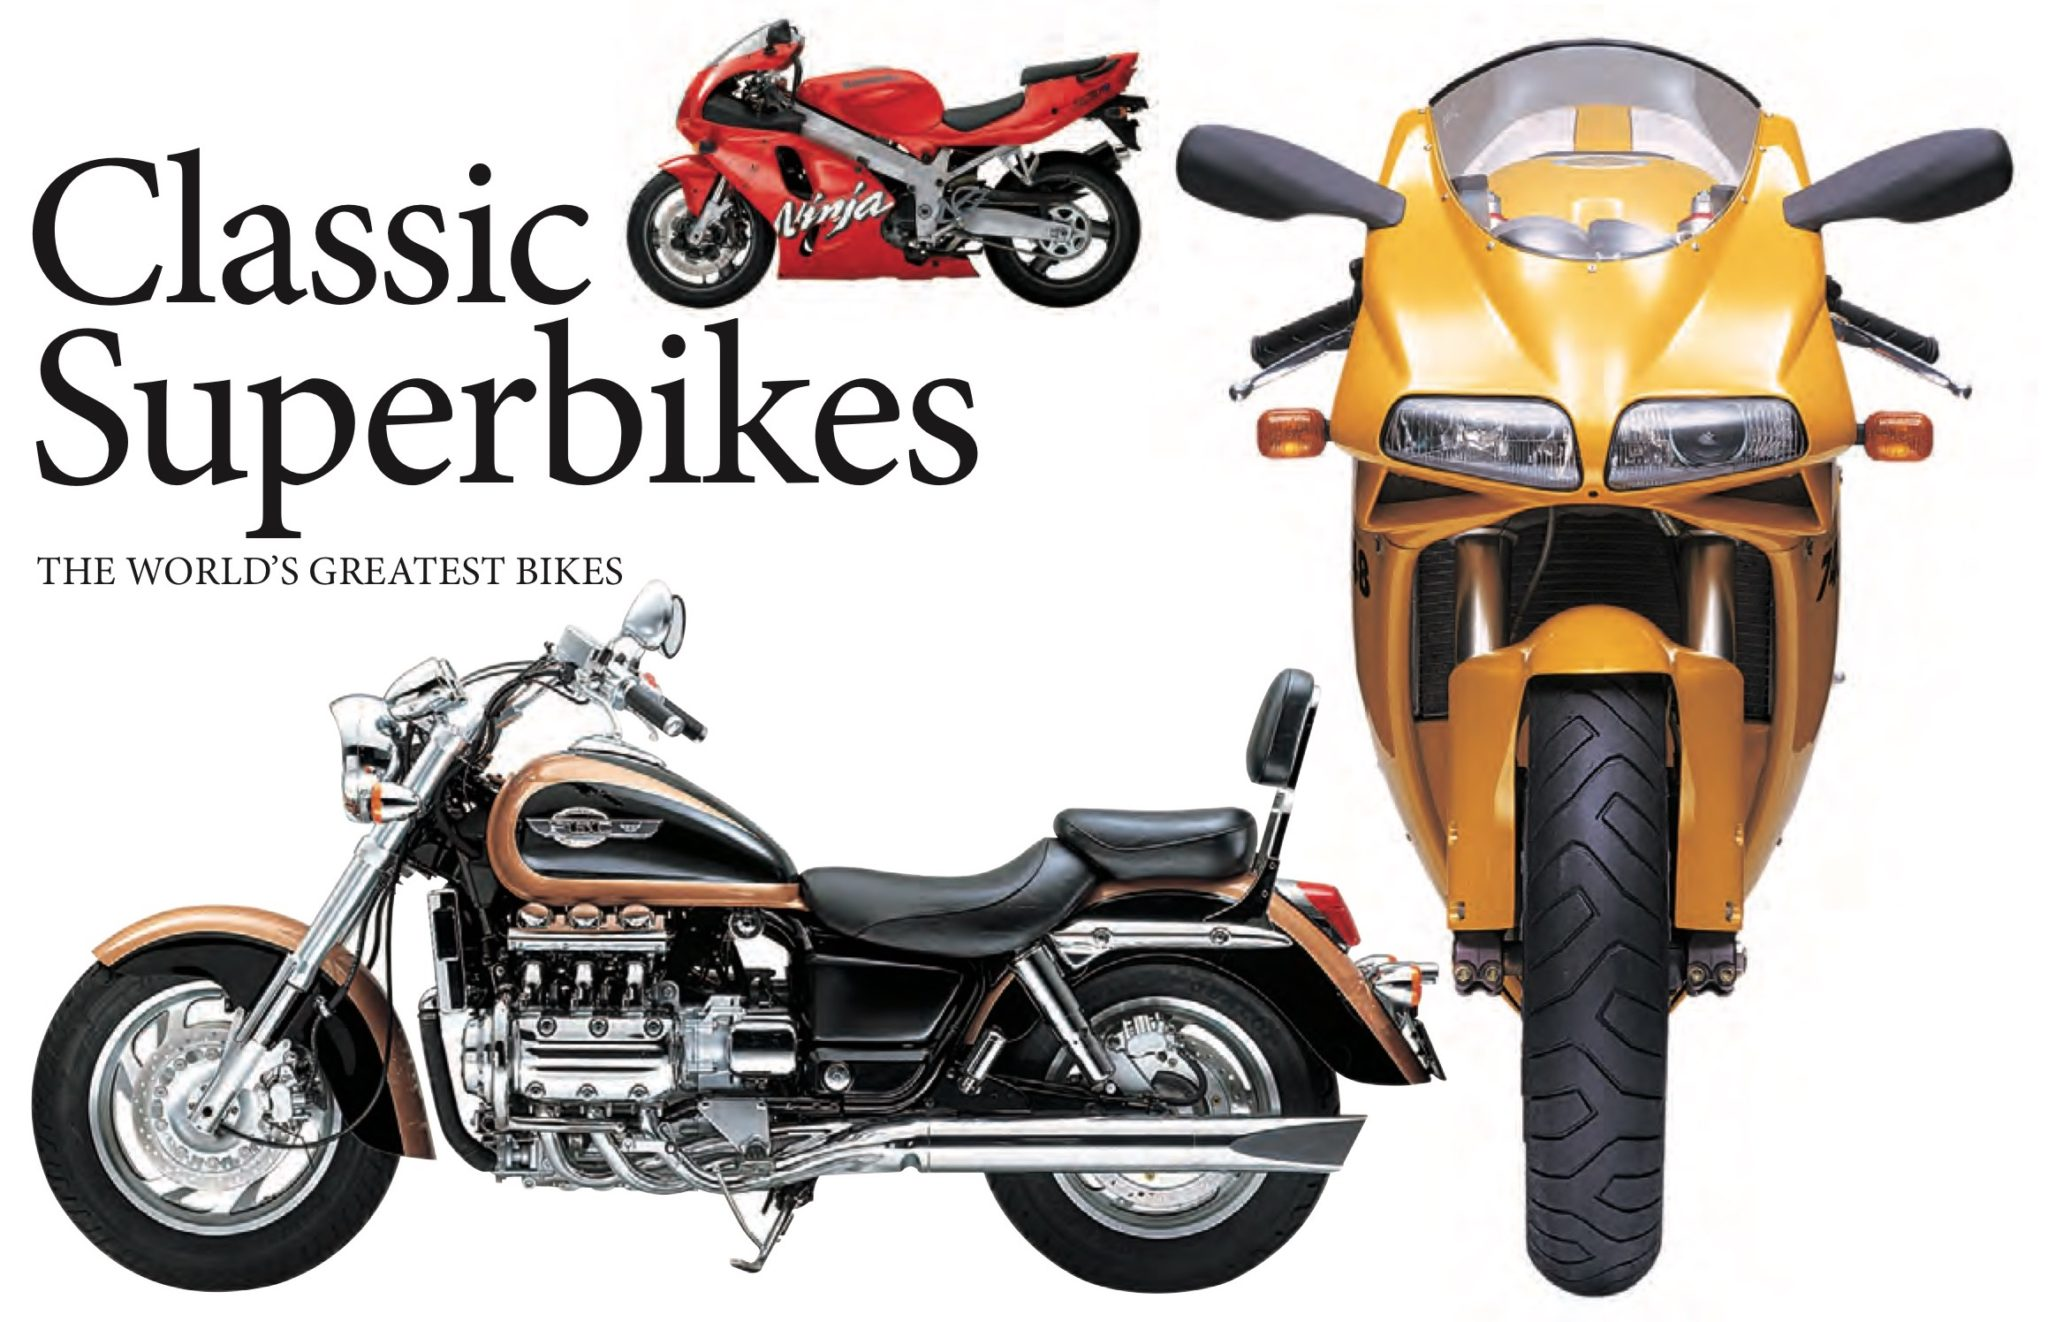 Classic Superbikes: Landscape Pocket Guides